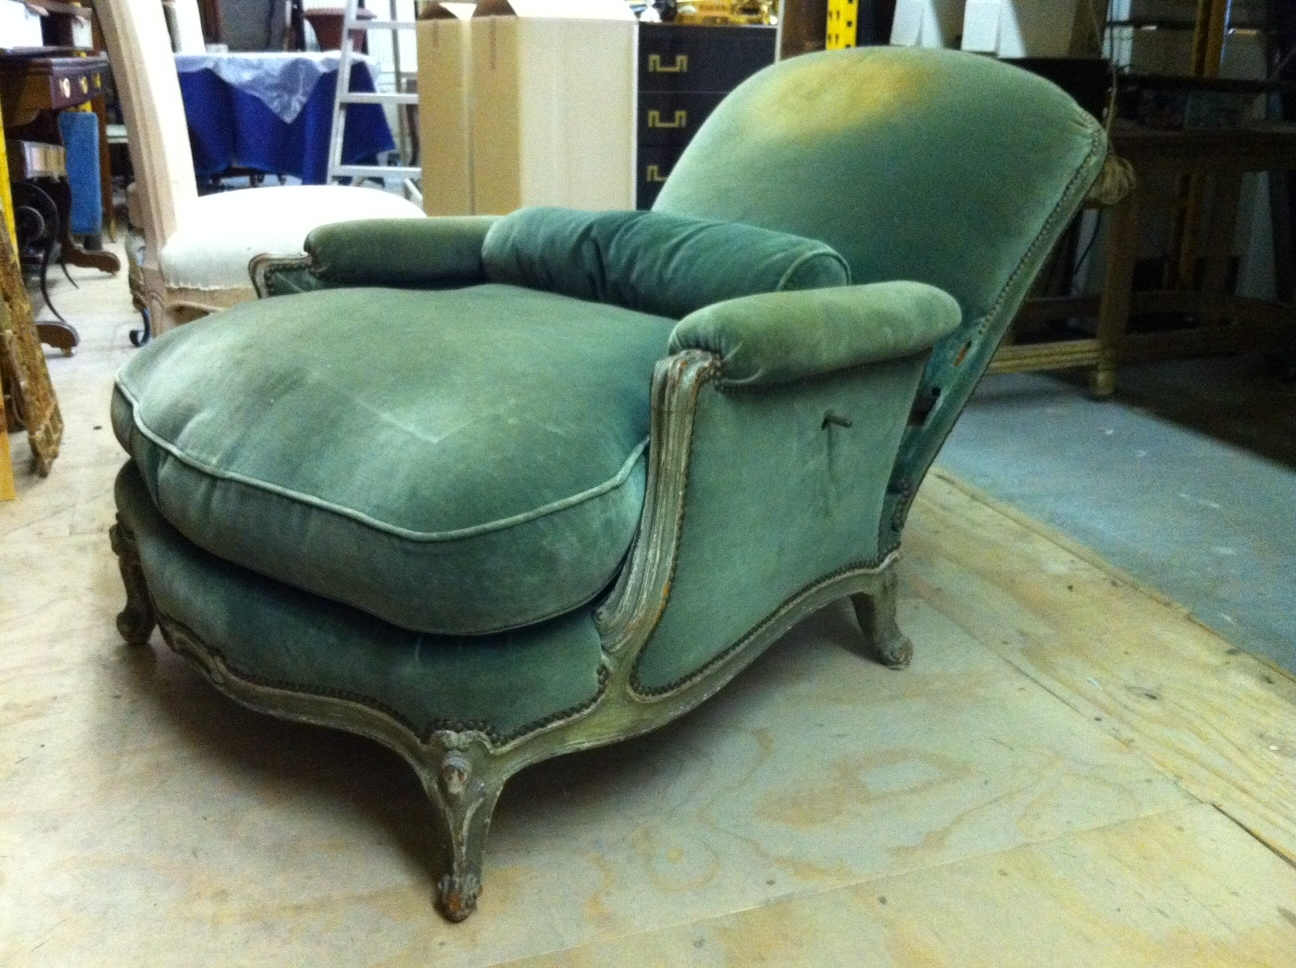 An original style Barroux in reclined position. One of the mechanical levers is underneath the arm.